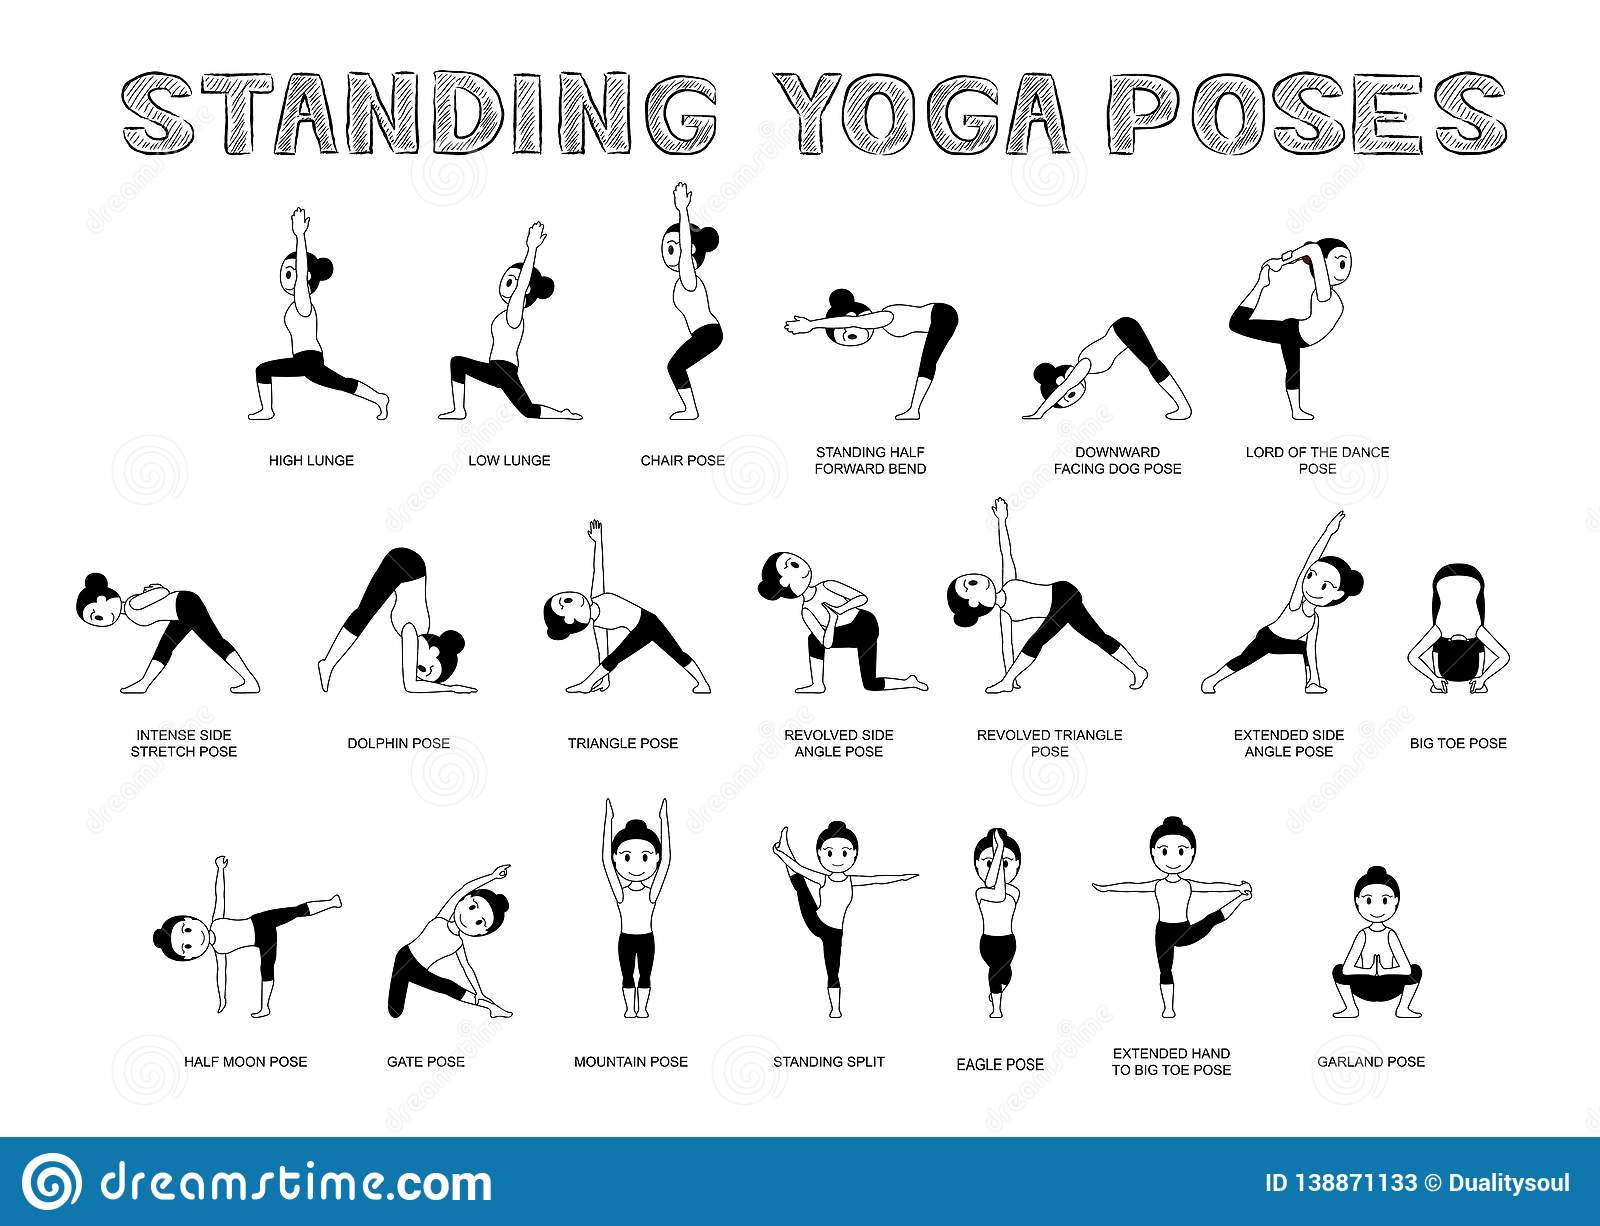 Standing Yoga Poses For Posture